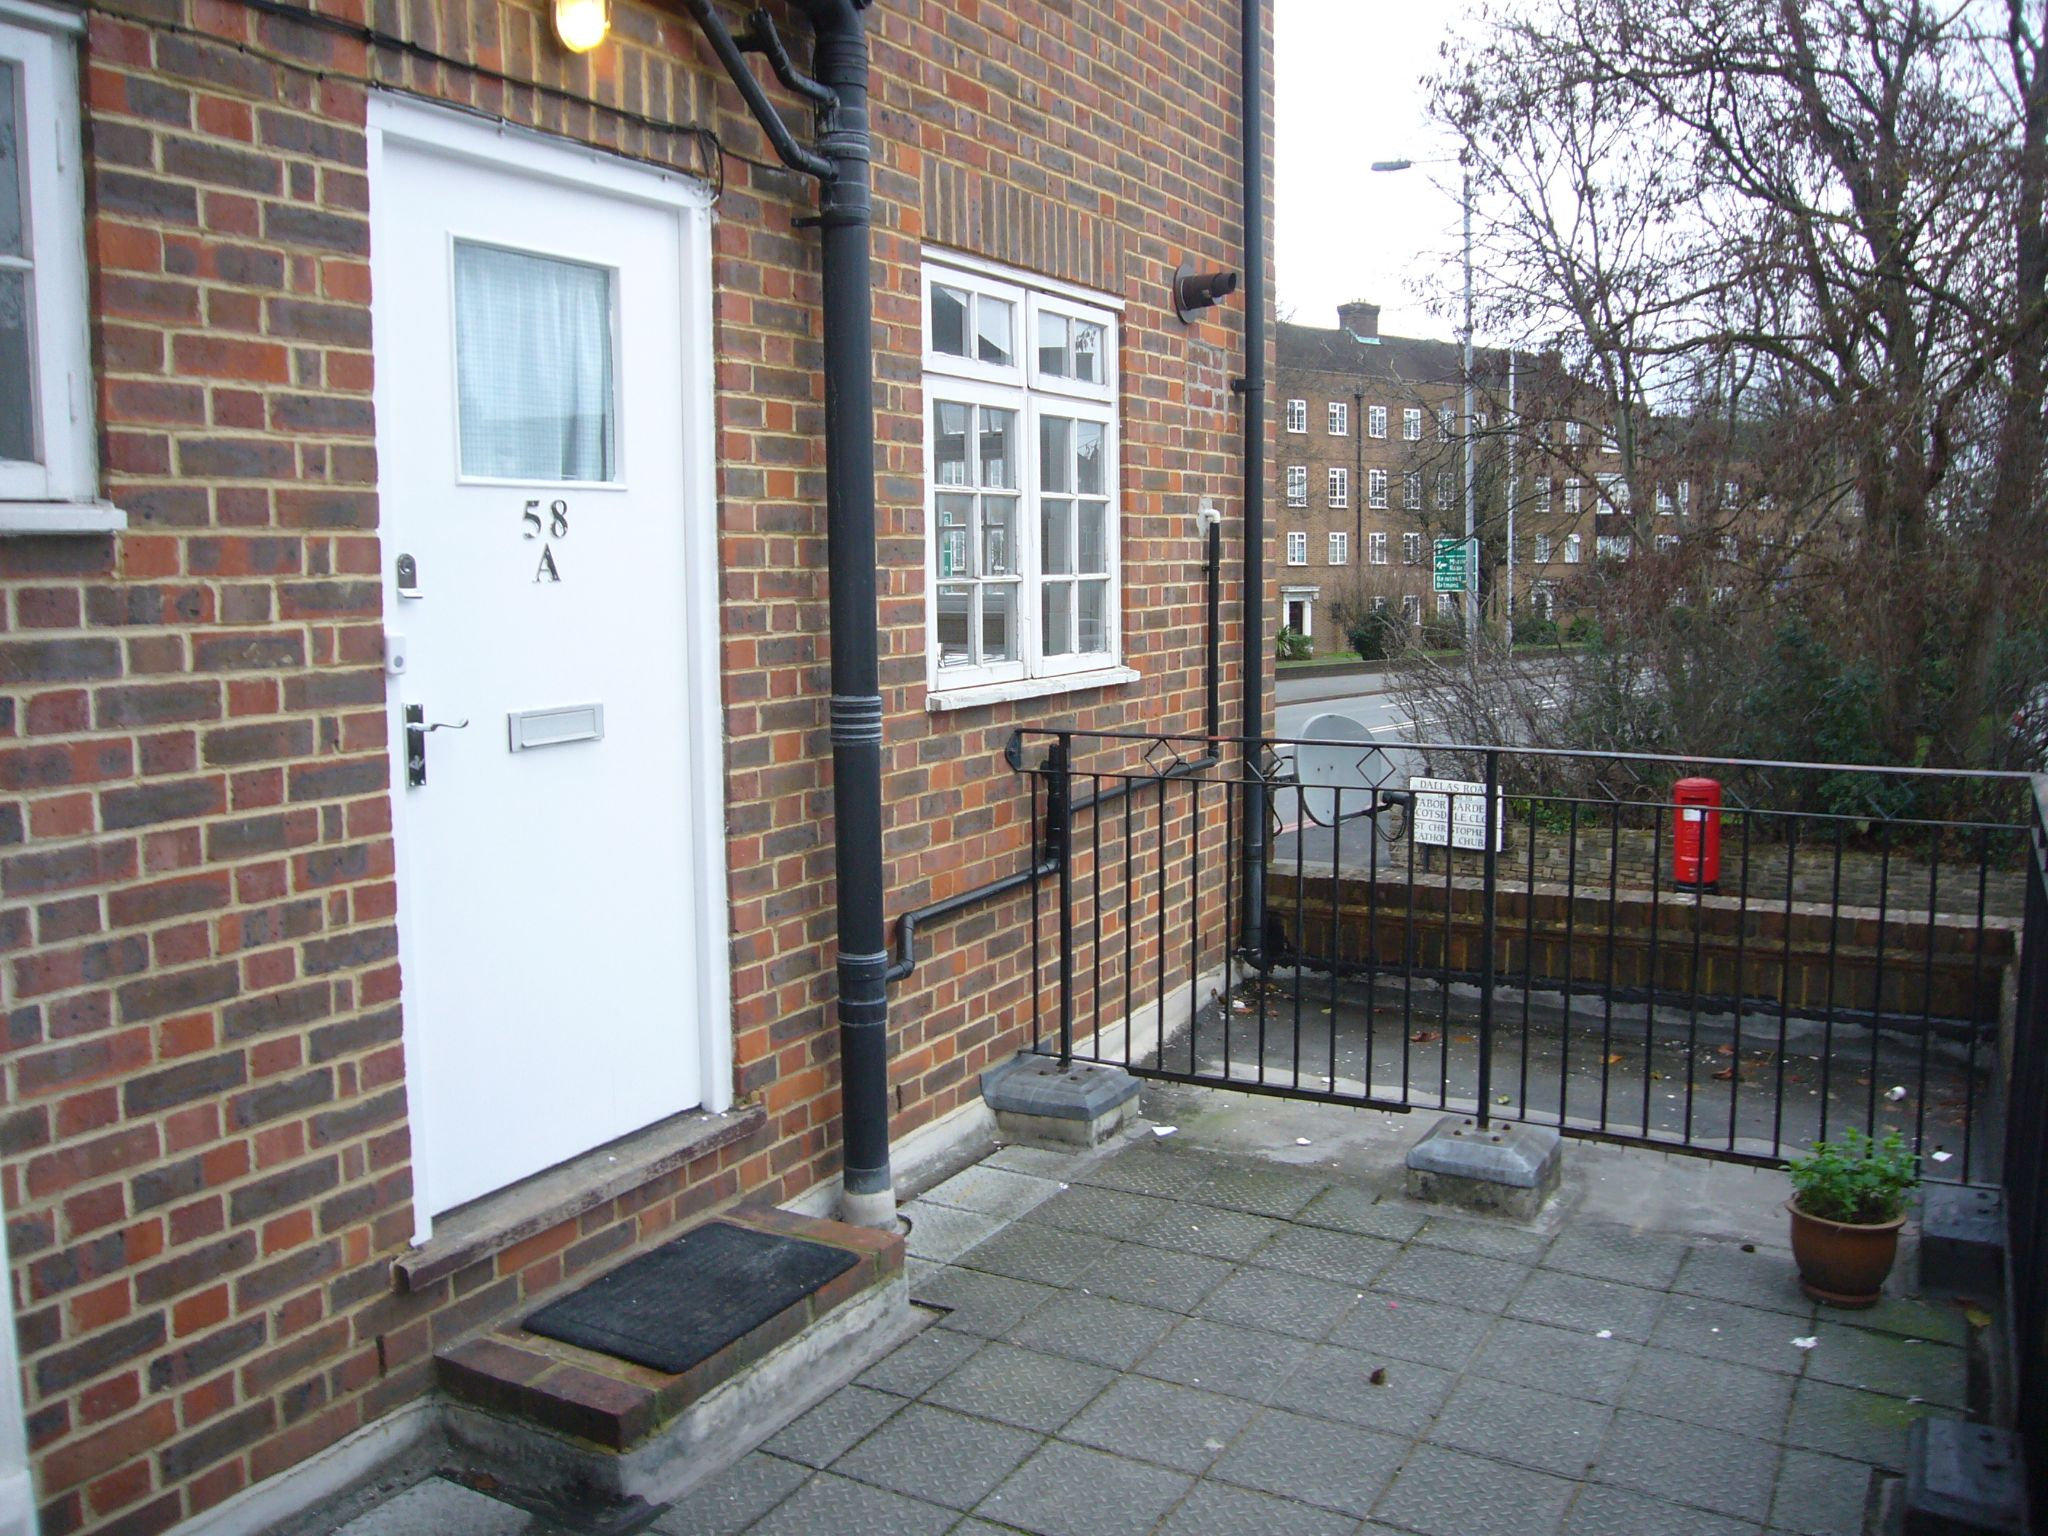 2 bedroom apartment flat/apartment Let Agreed in Cheam - Photograph 1.